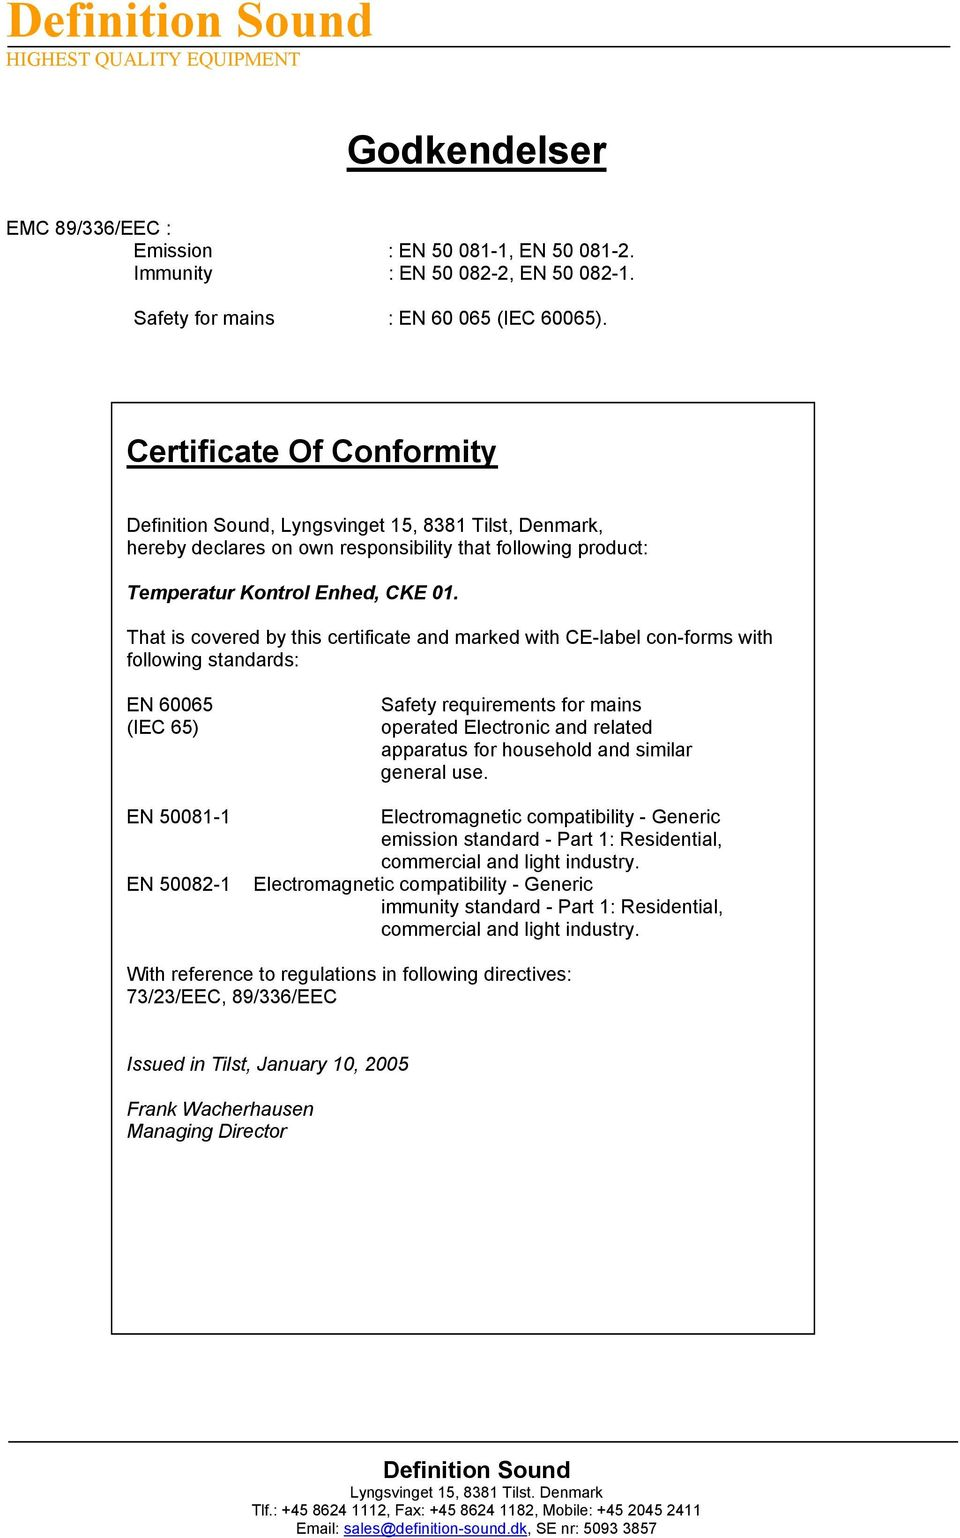 That is covered by this certificate and marked with CE-label con-forms with following standards: EN 60065 (IEC 65) EN 50081-1 EN 50082-1 Safety requirements for mains operated Electronic and related